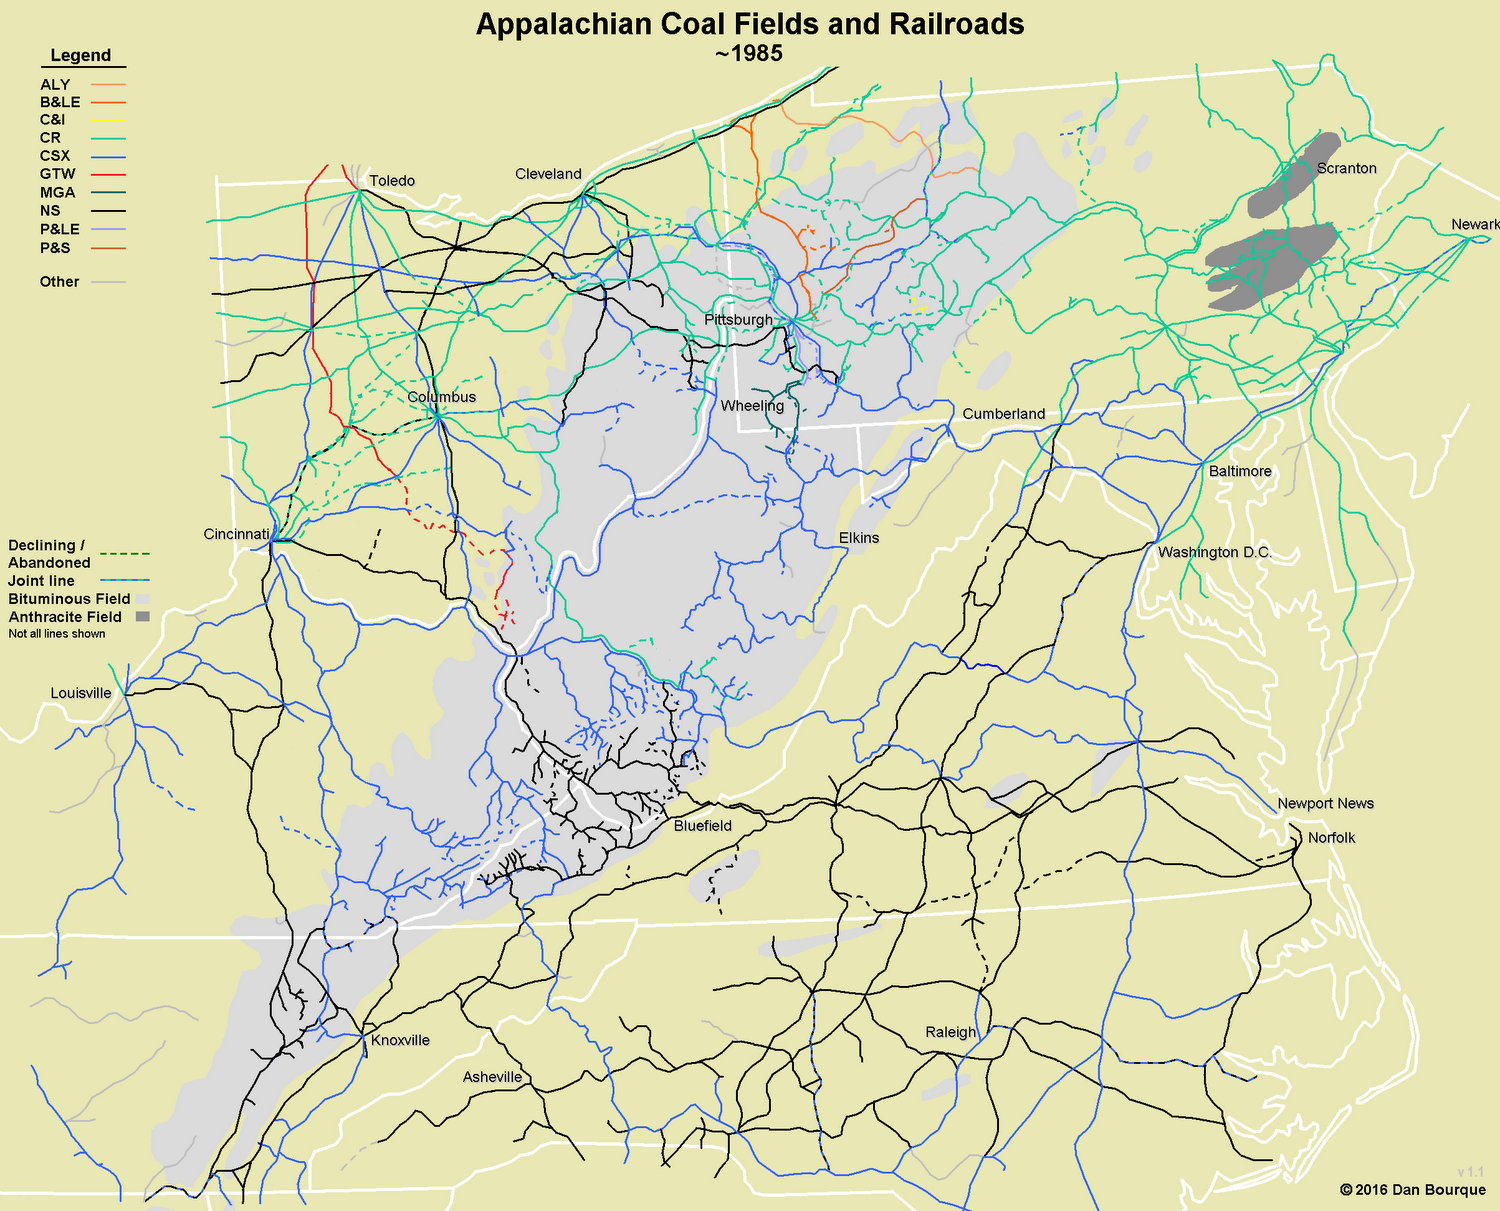 Map of Appalachian Railroads circa 1985